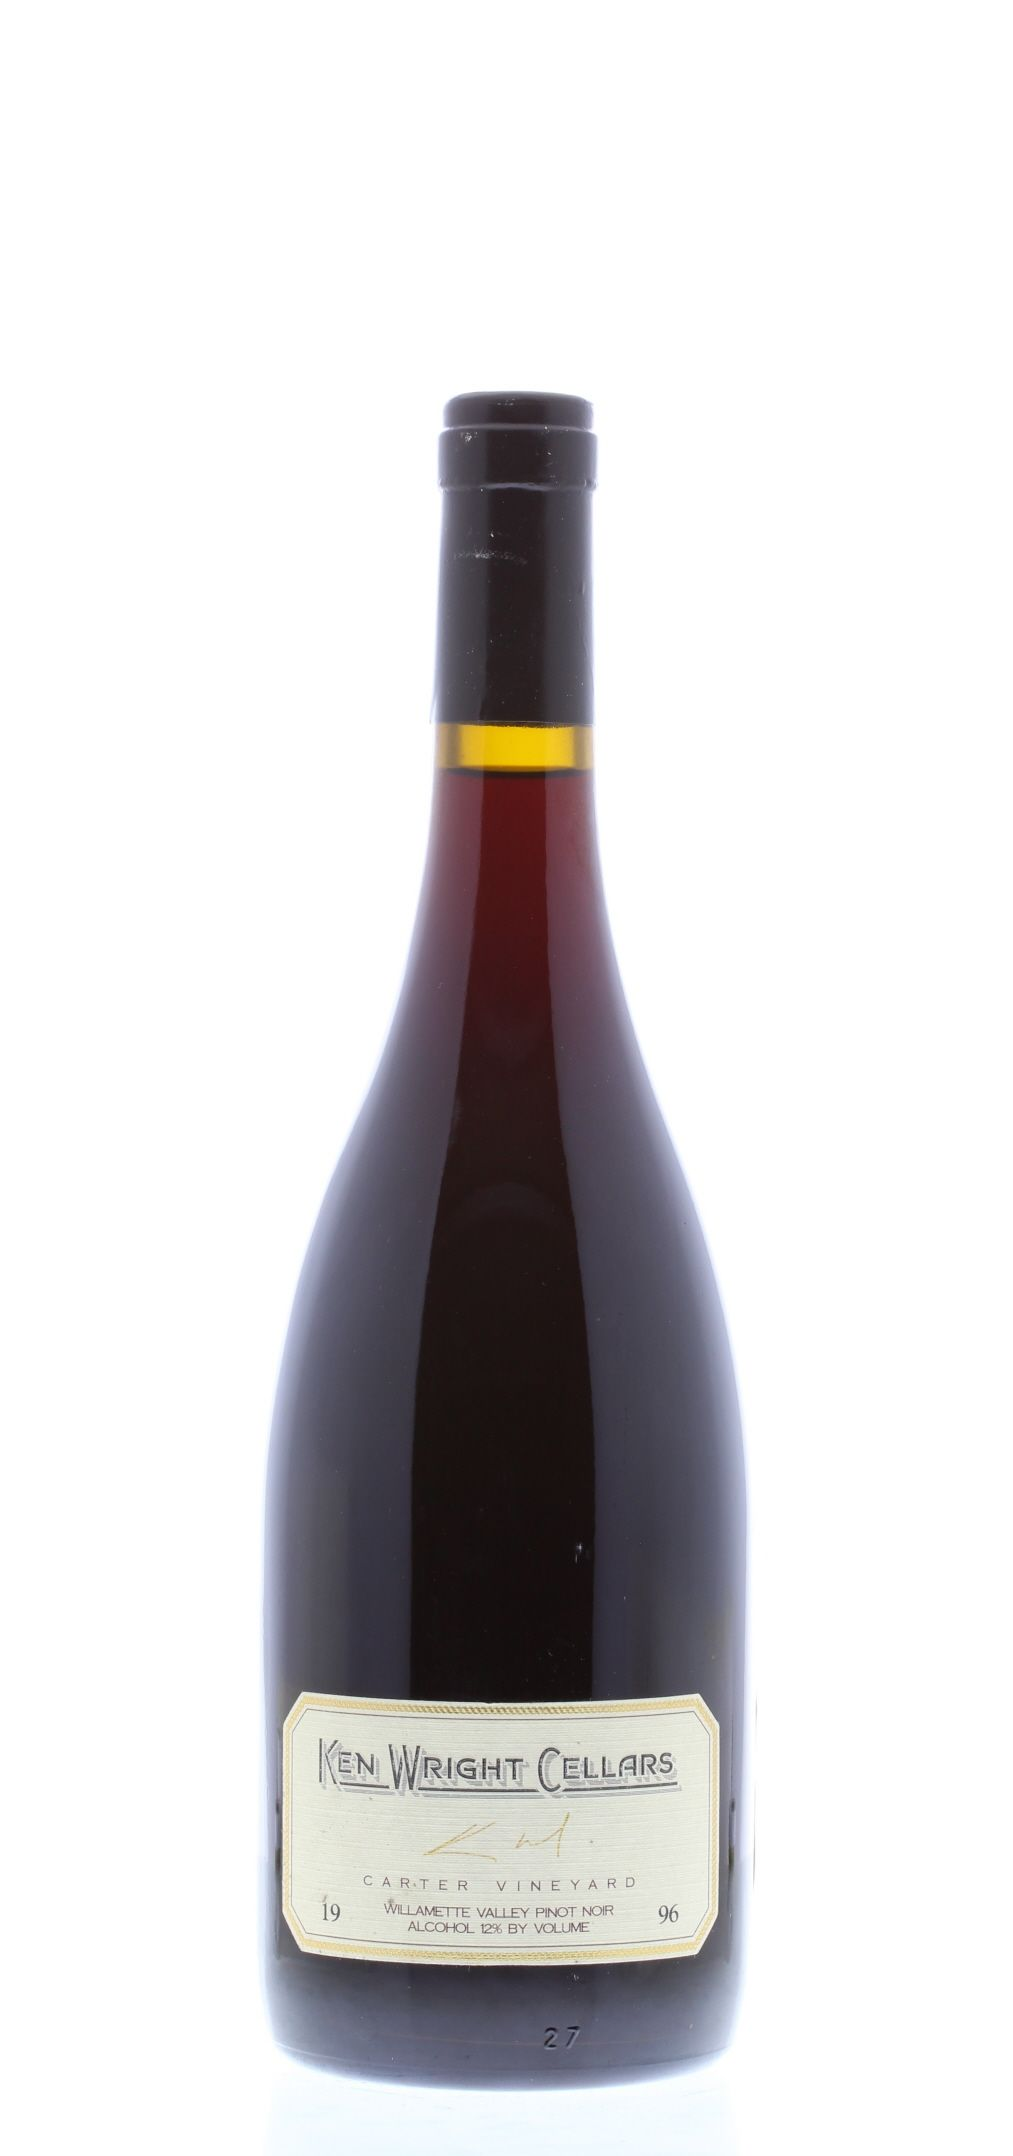 Ken Wright Cellars Carter Vineyard Pinot Noir 1996 Front Bottle Shot